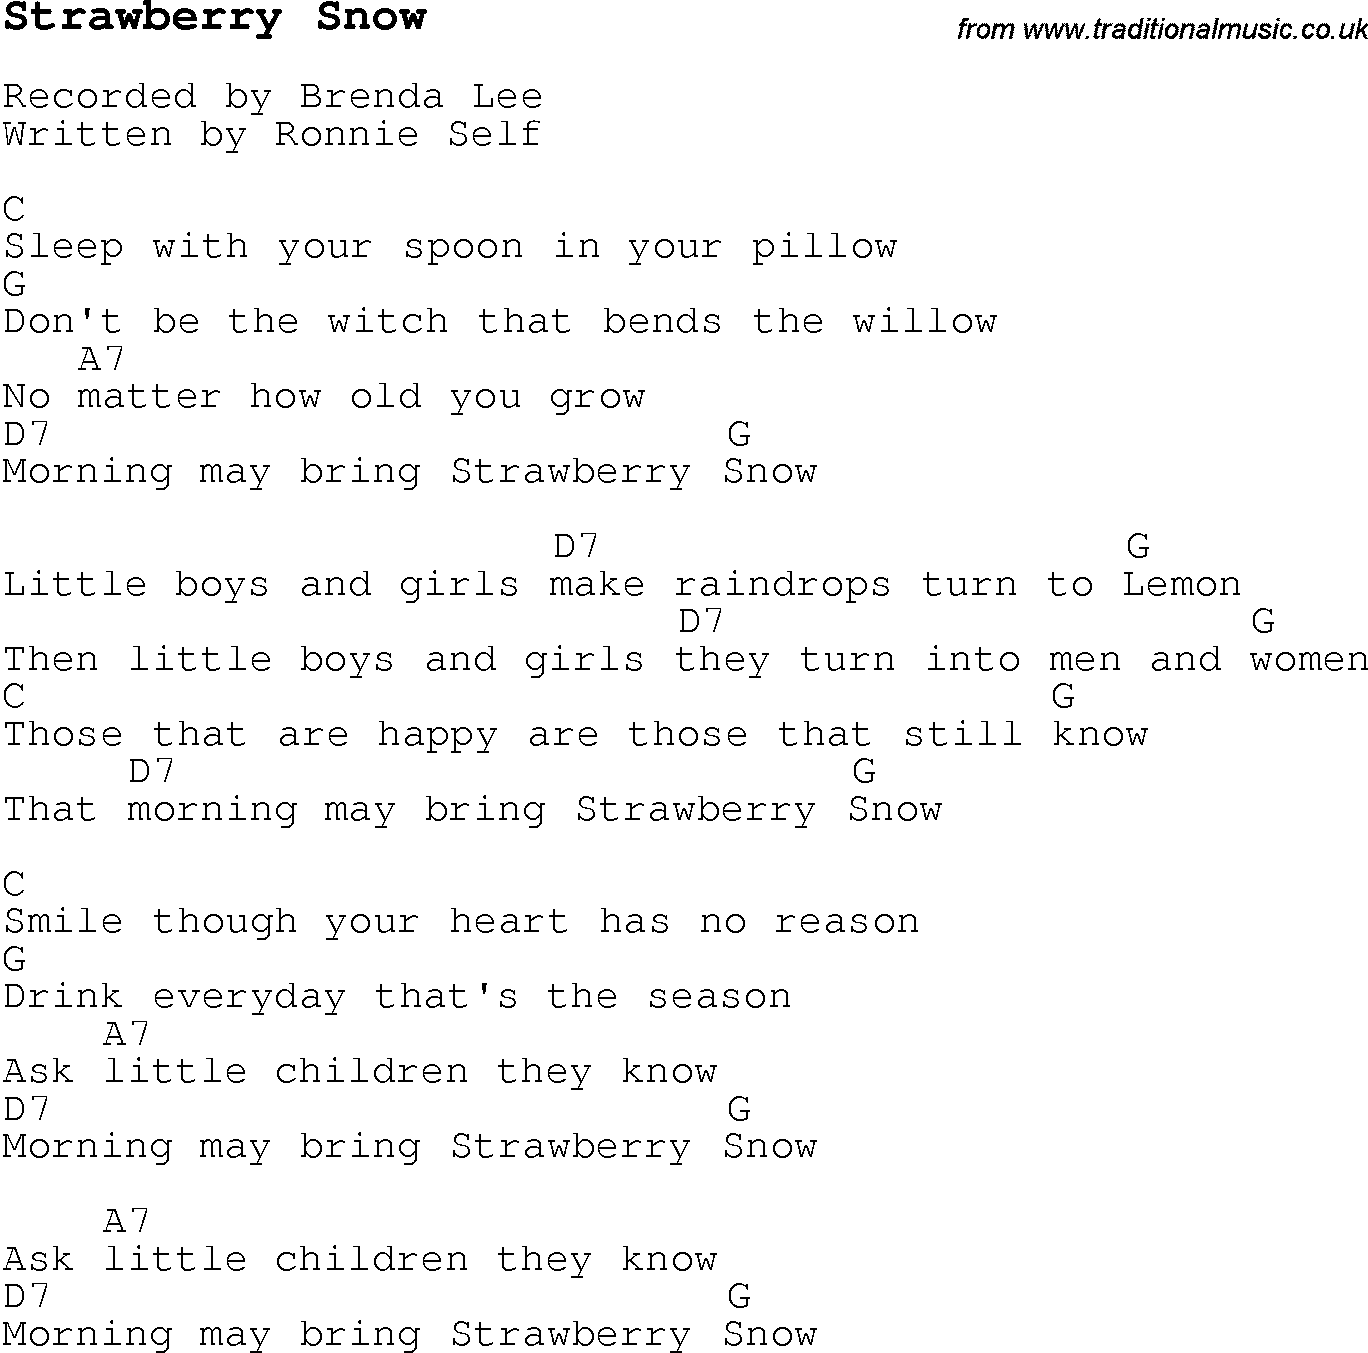 Christmas Carol/Song lyrics with chords for Strawberry Snow